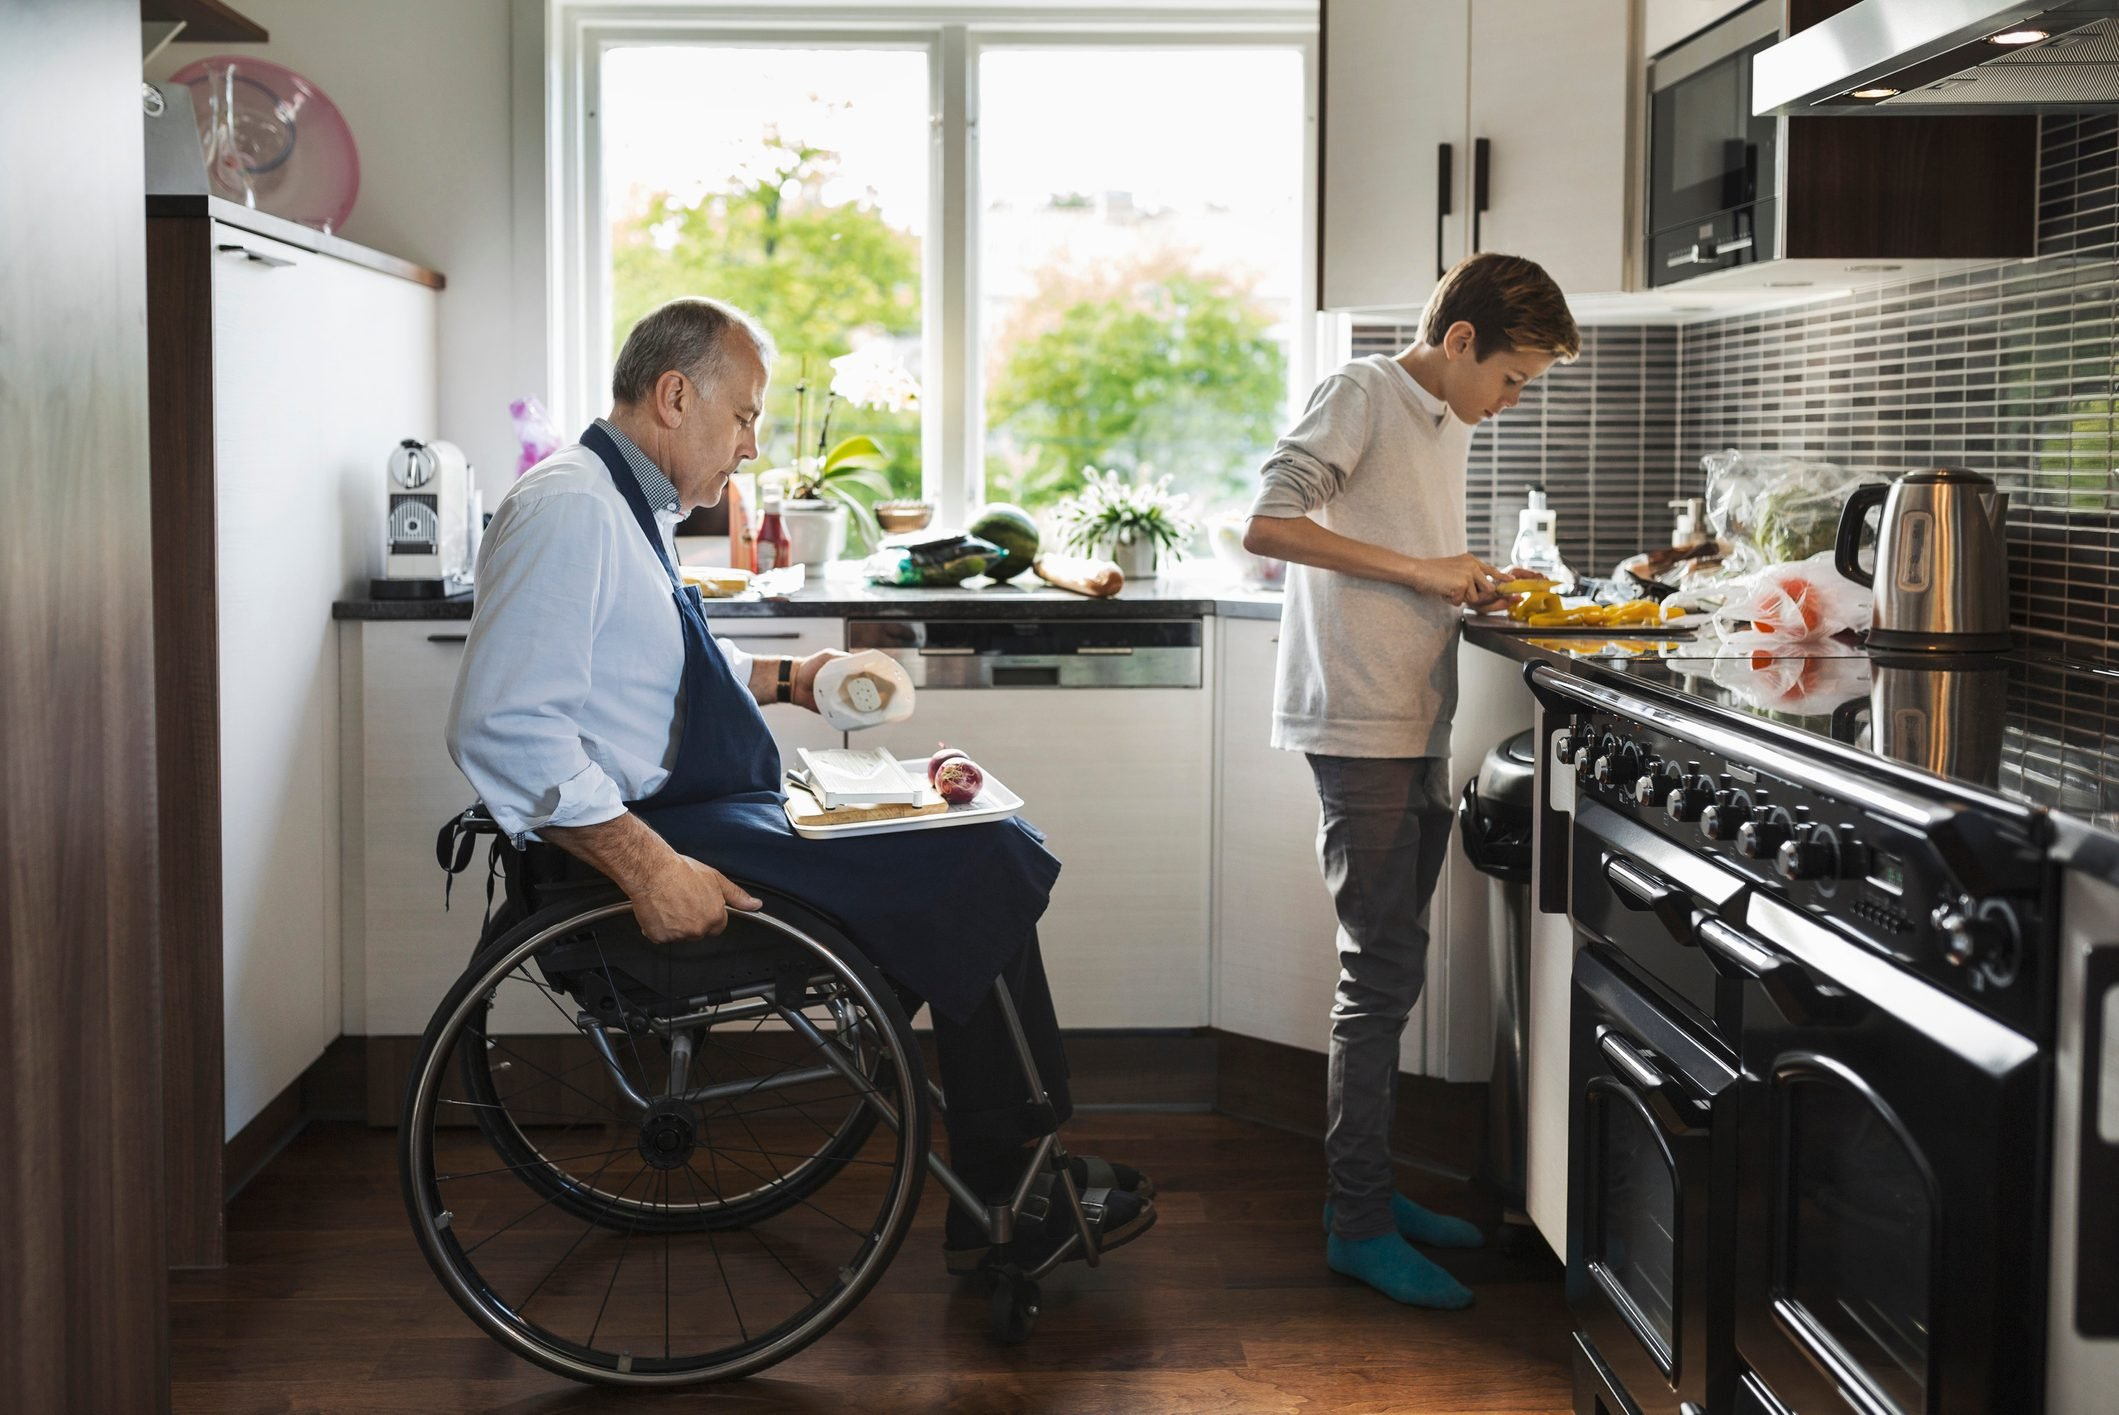 Son with disabled father cutting vegetables in kitchen